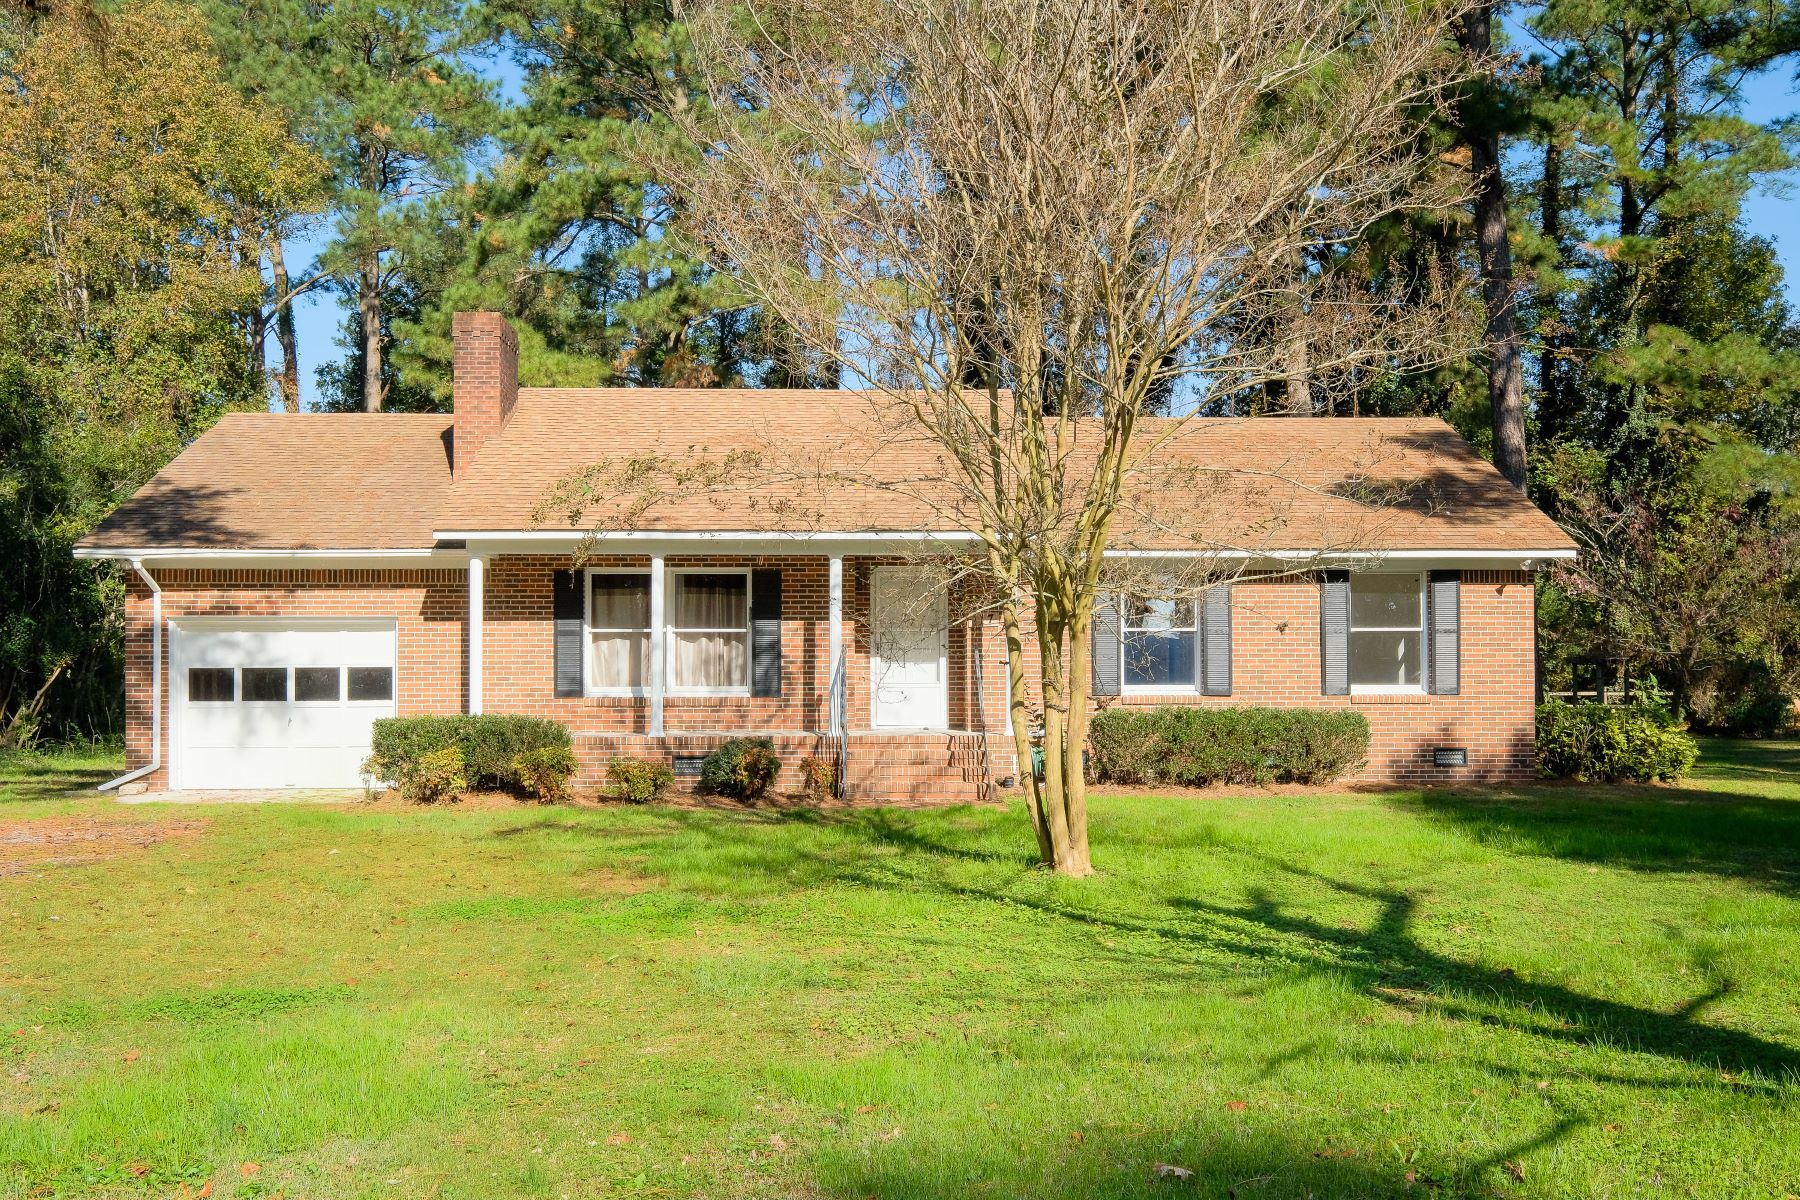 واحد منزل الأسرة للـ Sale في BRICK RANCH 117 Country Club Dr, Edenton, North Carolina, 27932 United States